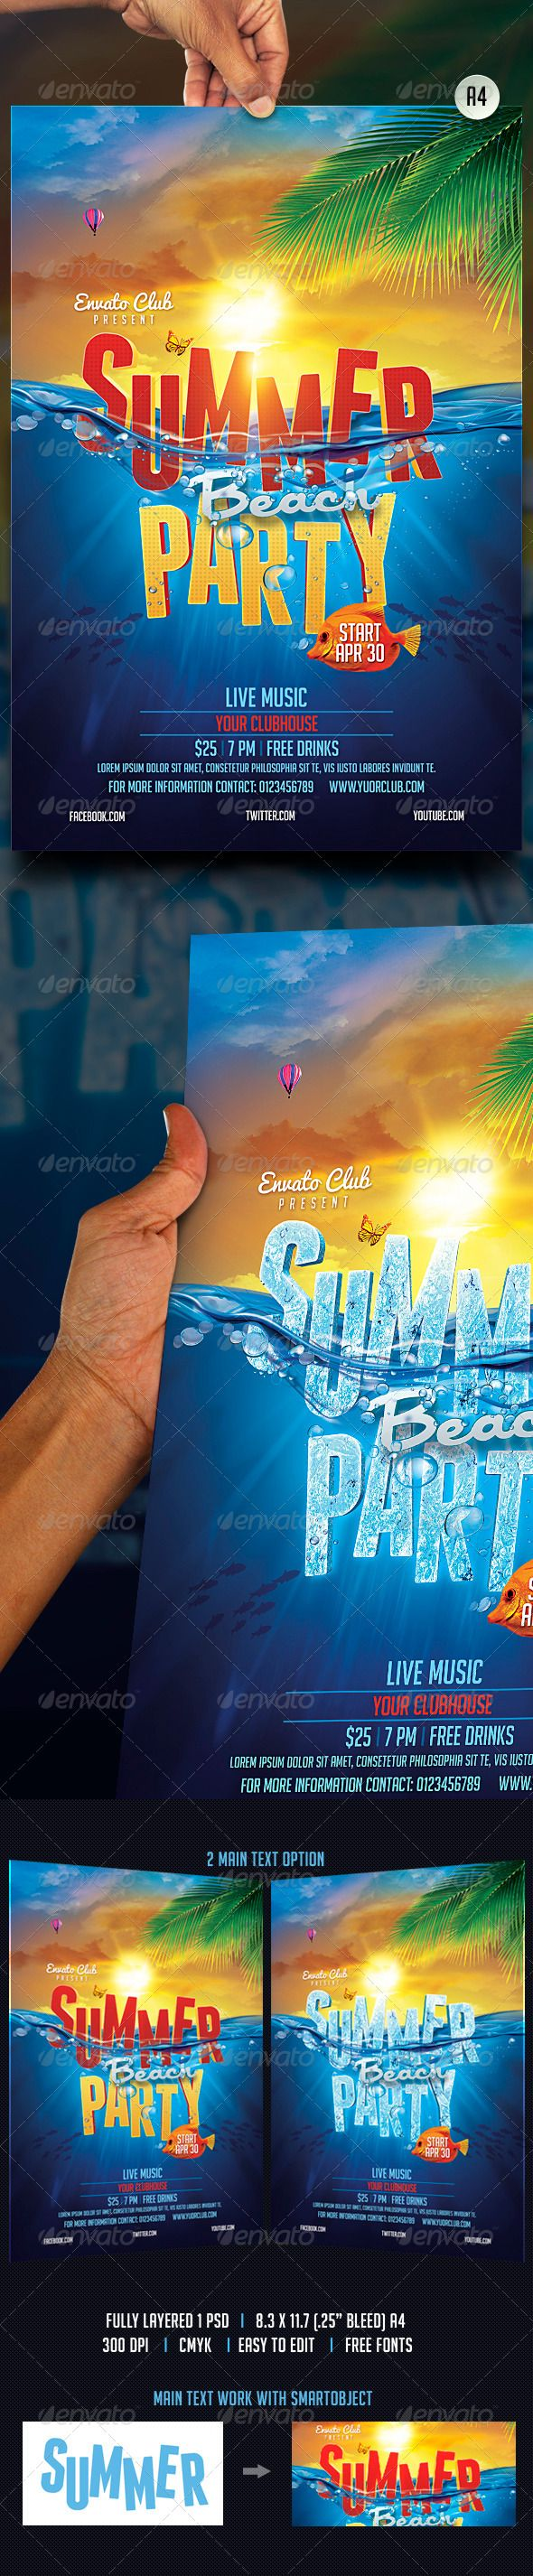 Summer Beach Party Flyer Template #design Download: http://ksioks.com/13-high-quality-summer-party-flyer-templates/